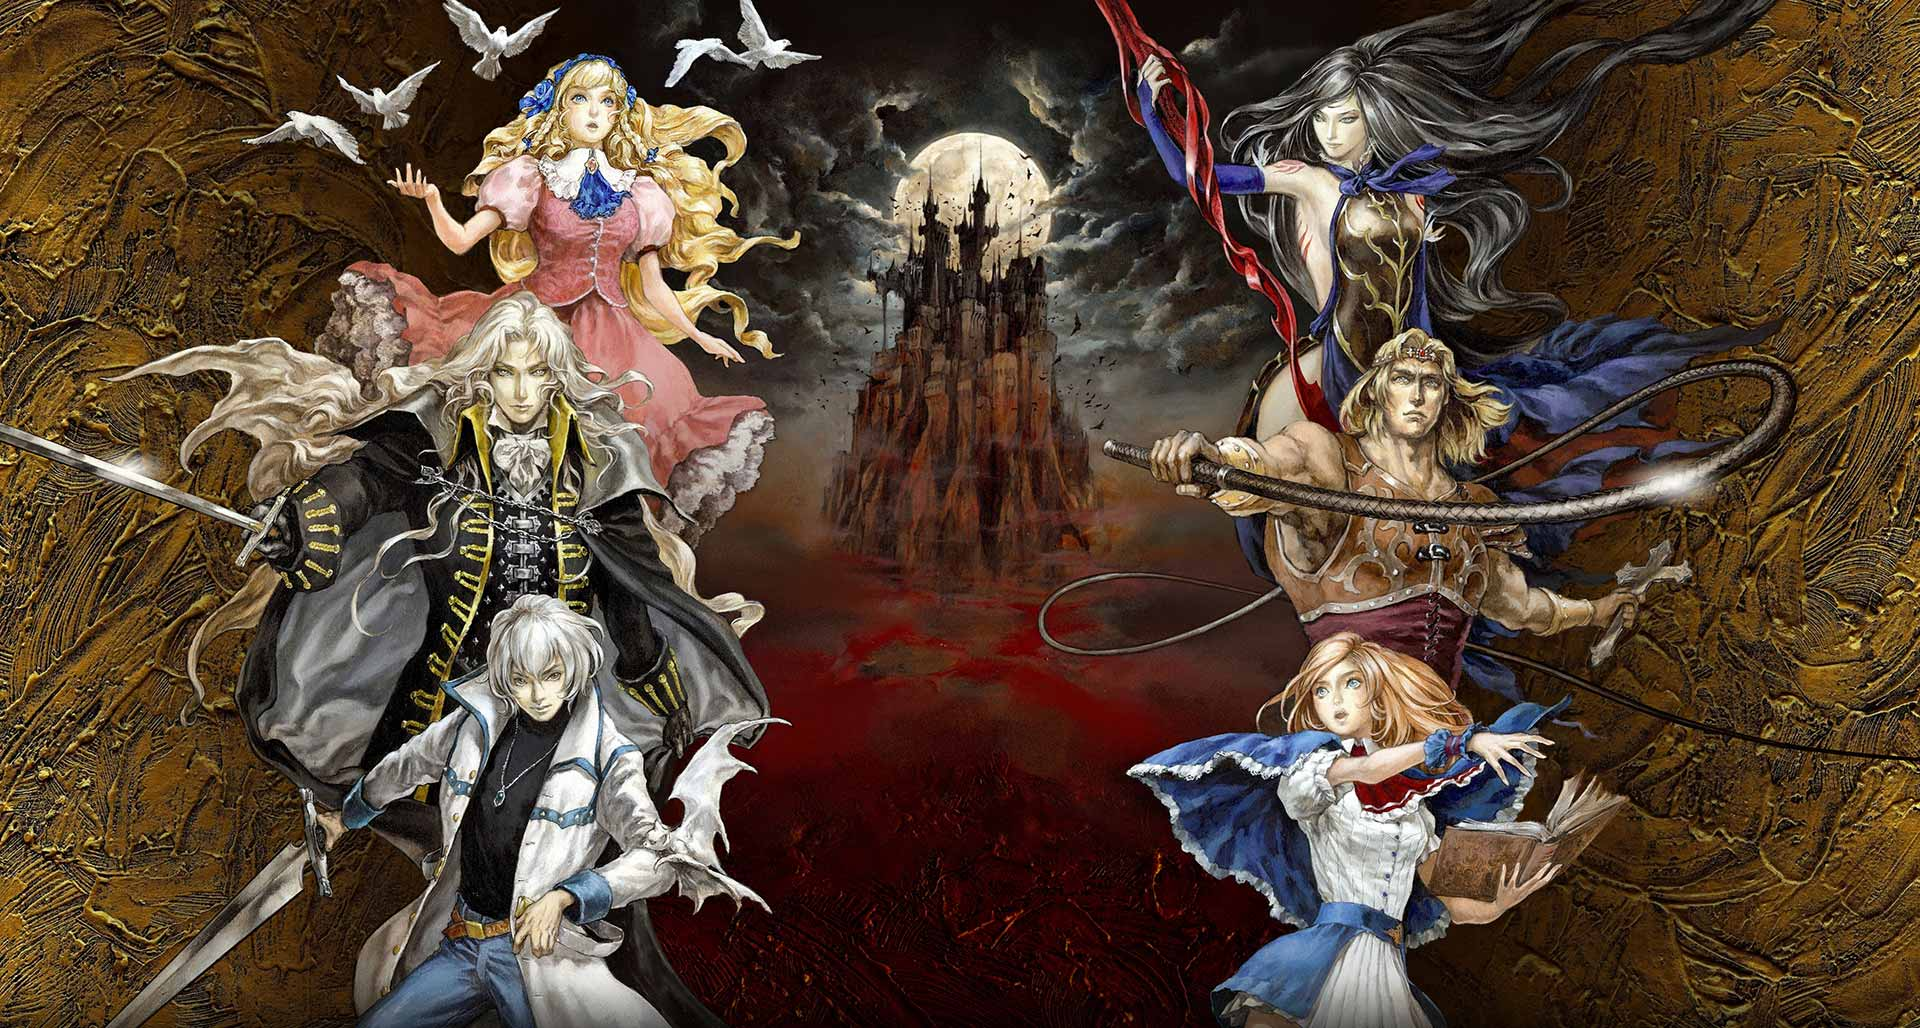 Castlevania Grimoire of Souls Artwork